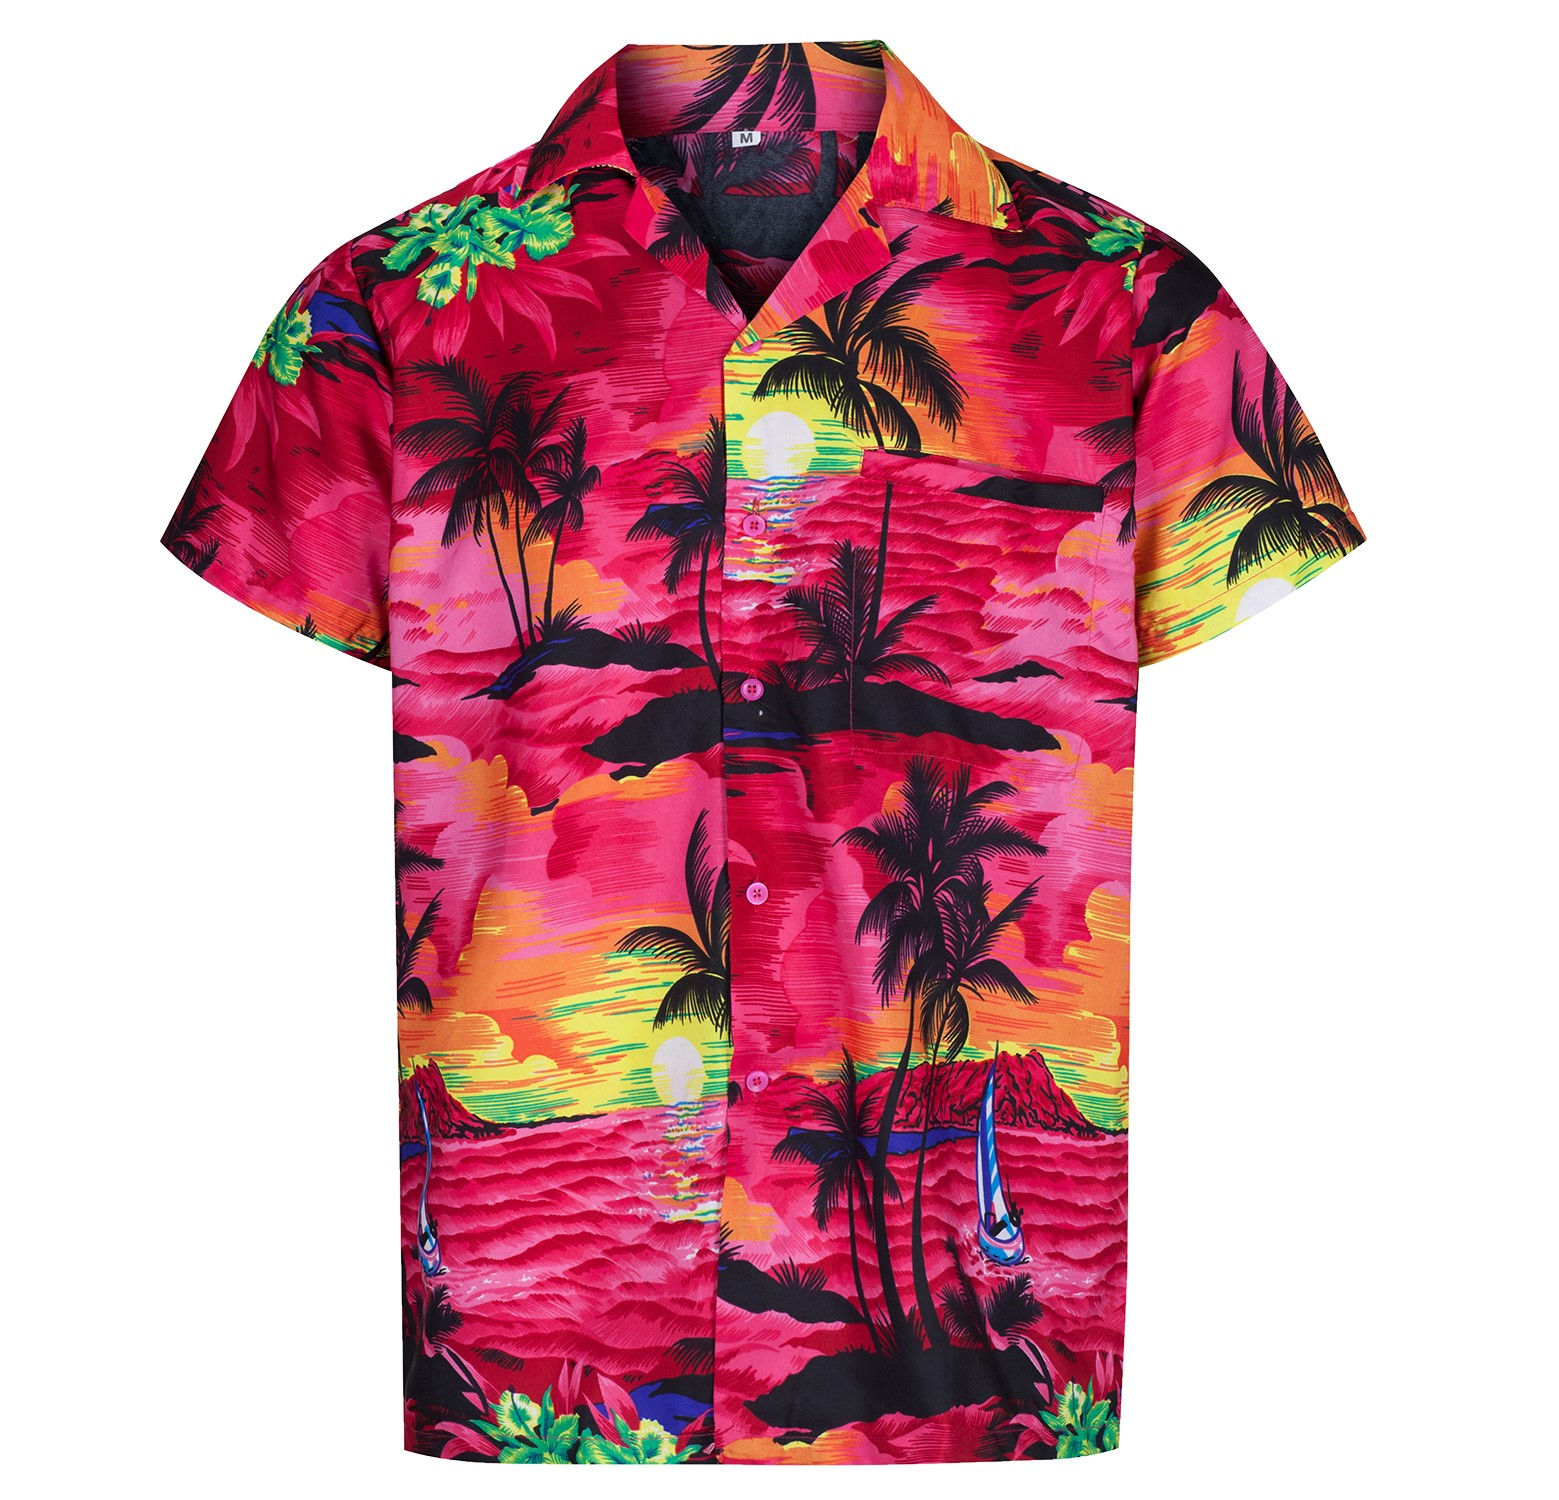 MENS-HAWAIIAN-SHIRT-ALOHA-THEMED-PARTY-SHIRT-HOLIDAY-BEACH-FANCY-DRESS-STAG-DO